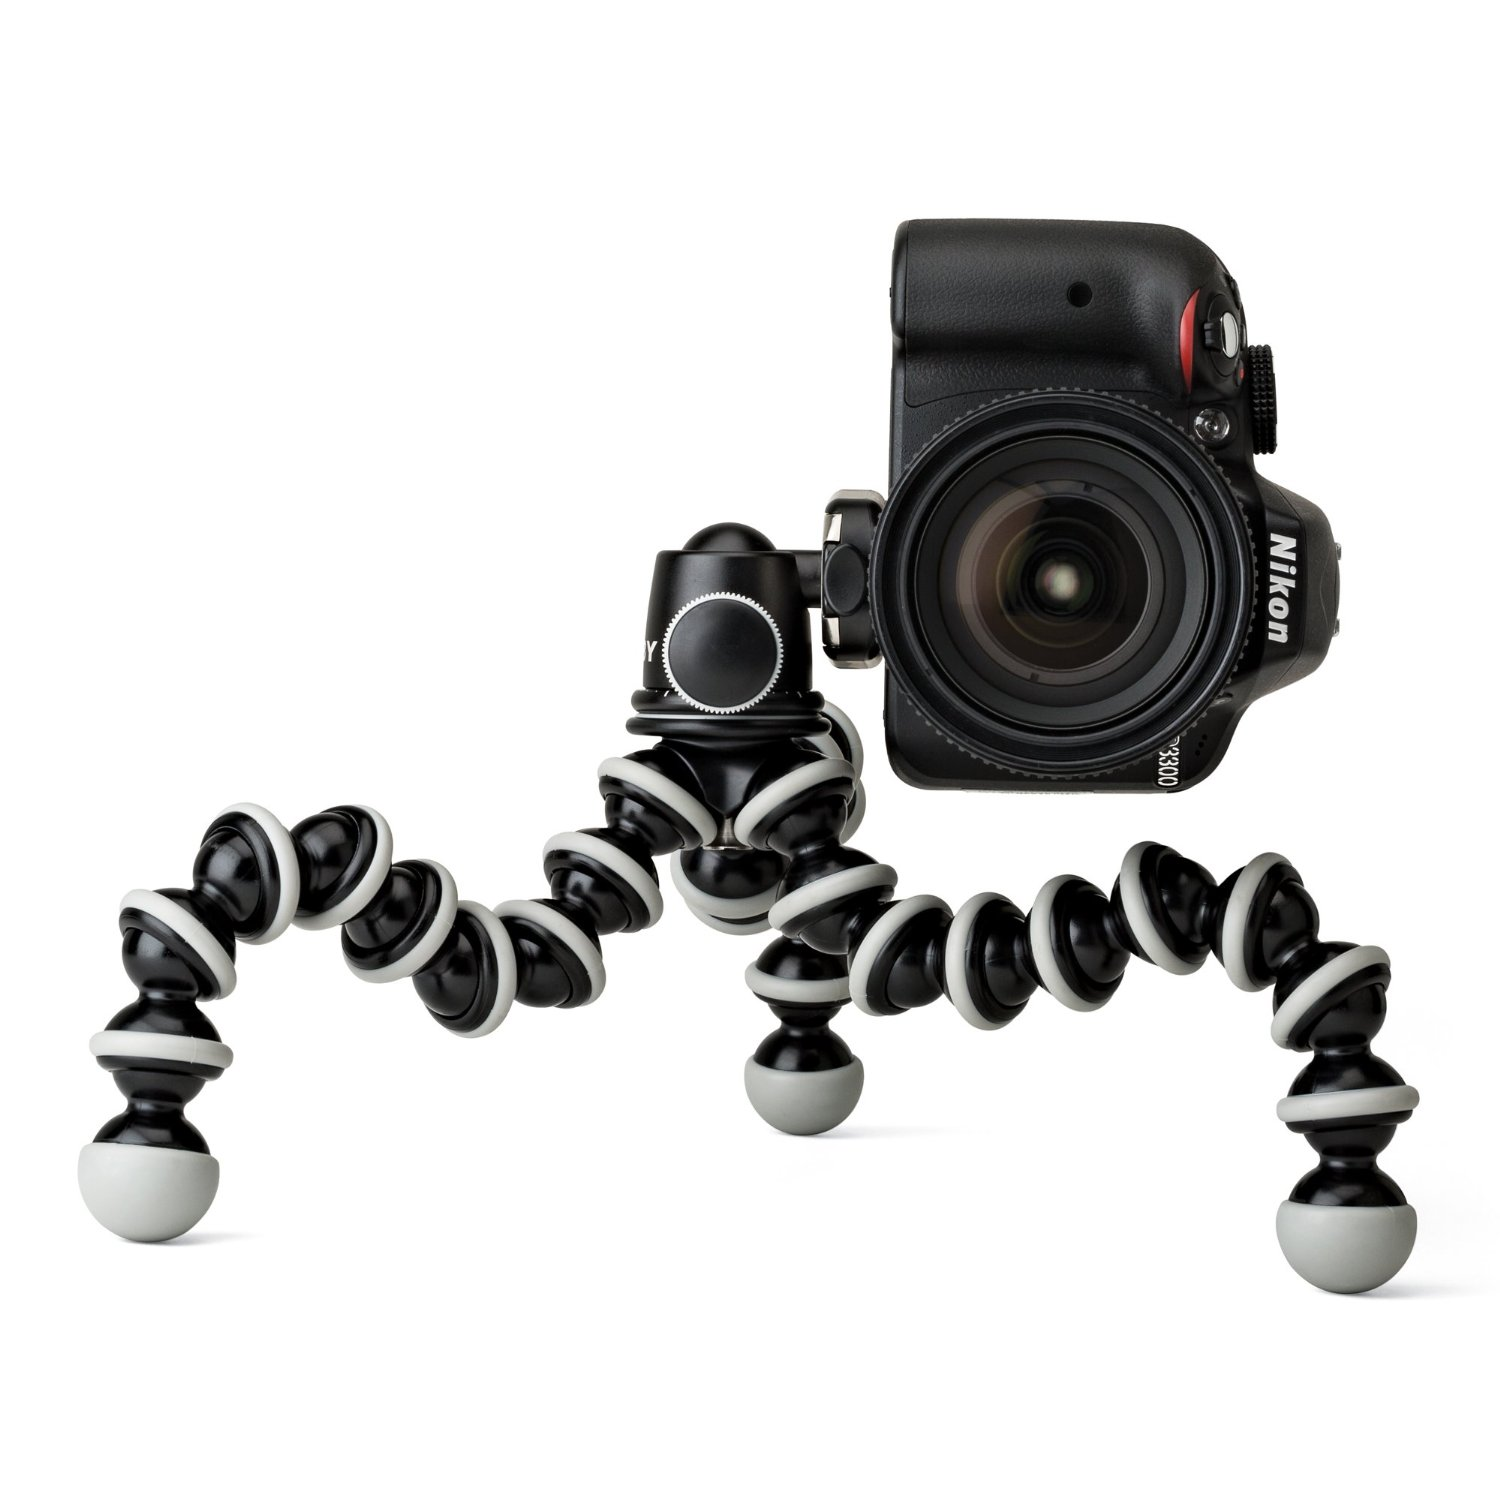 Amazon.com : Joby GorillaPod SLR Zoom Tripod with Ball Head Bundle for DSLR and Mirrorless Cameras : Camera And Video Accessory Bundles